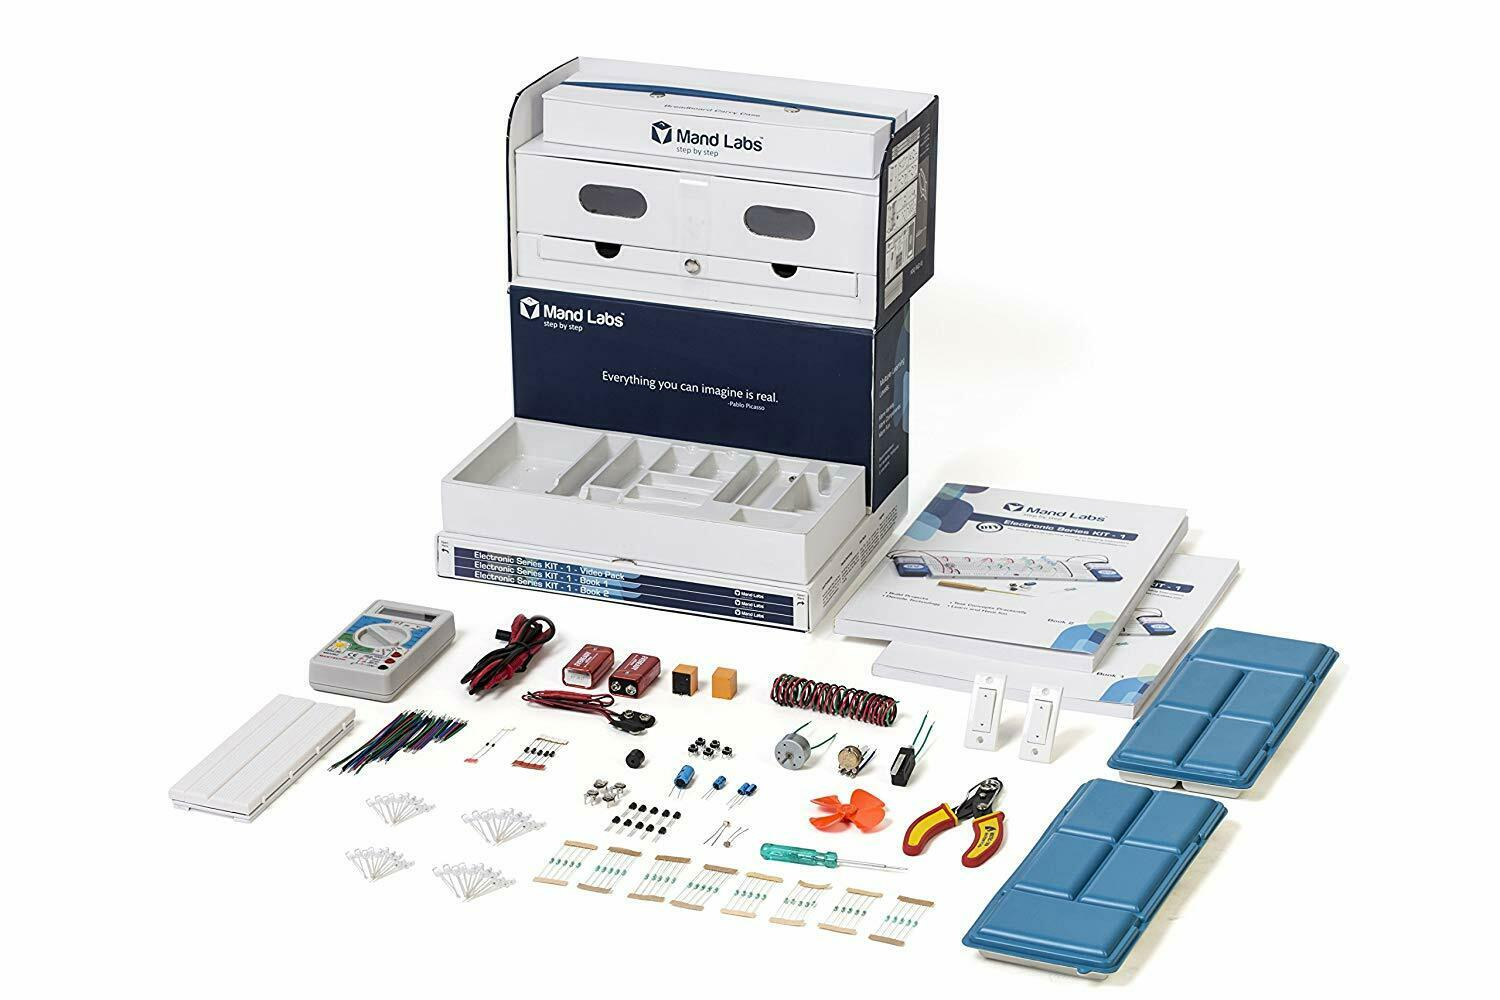 Mand Labs KIT -1 ståardutgåva  The All -in -one STEM Electronics Kit